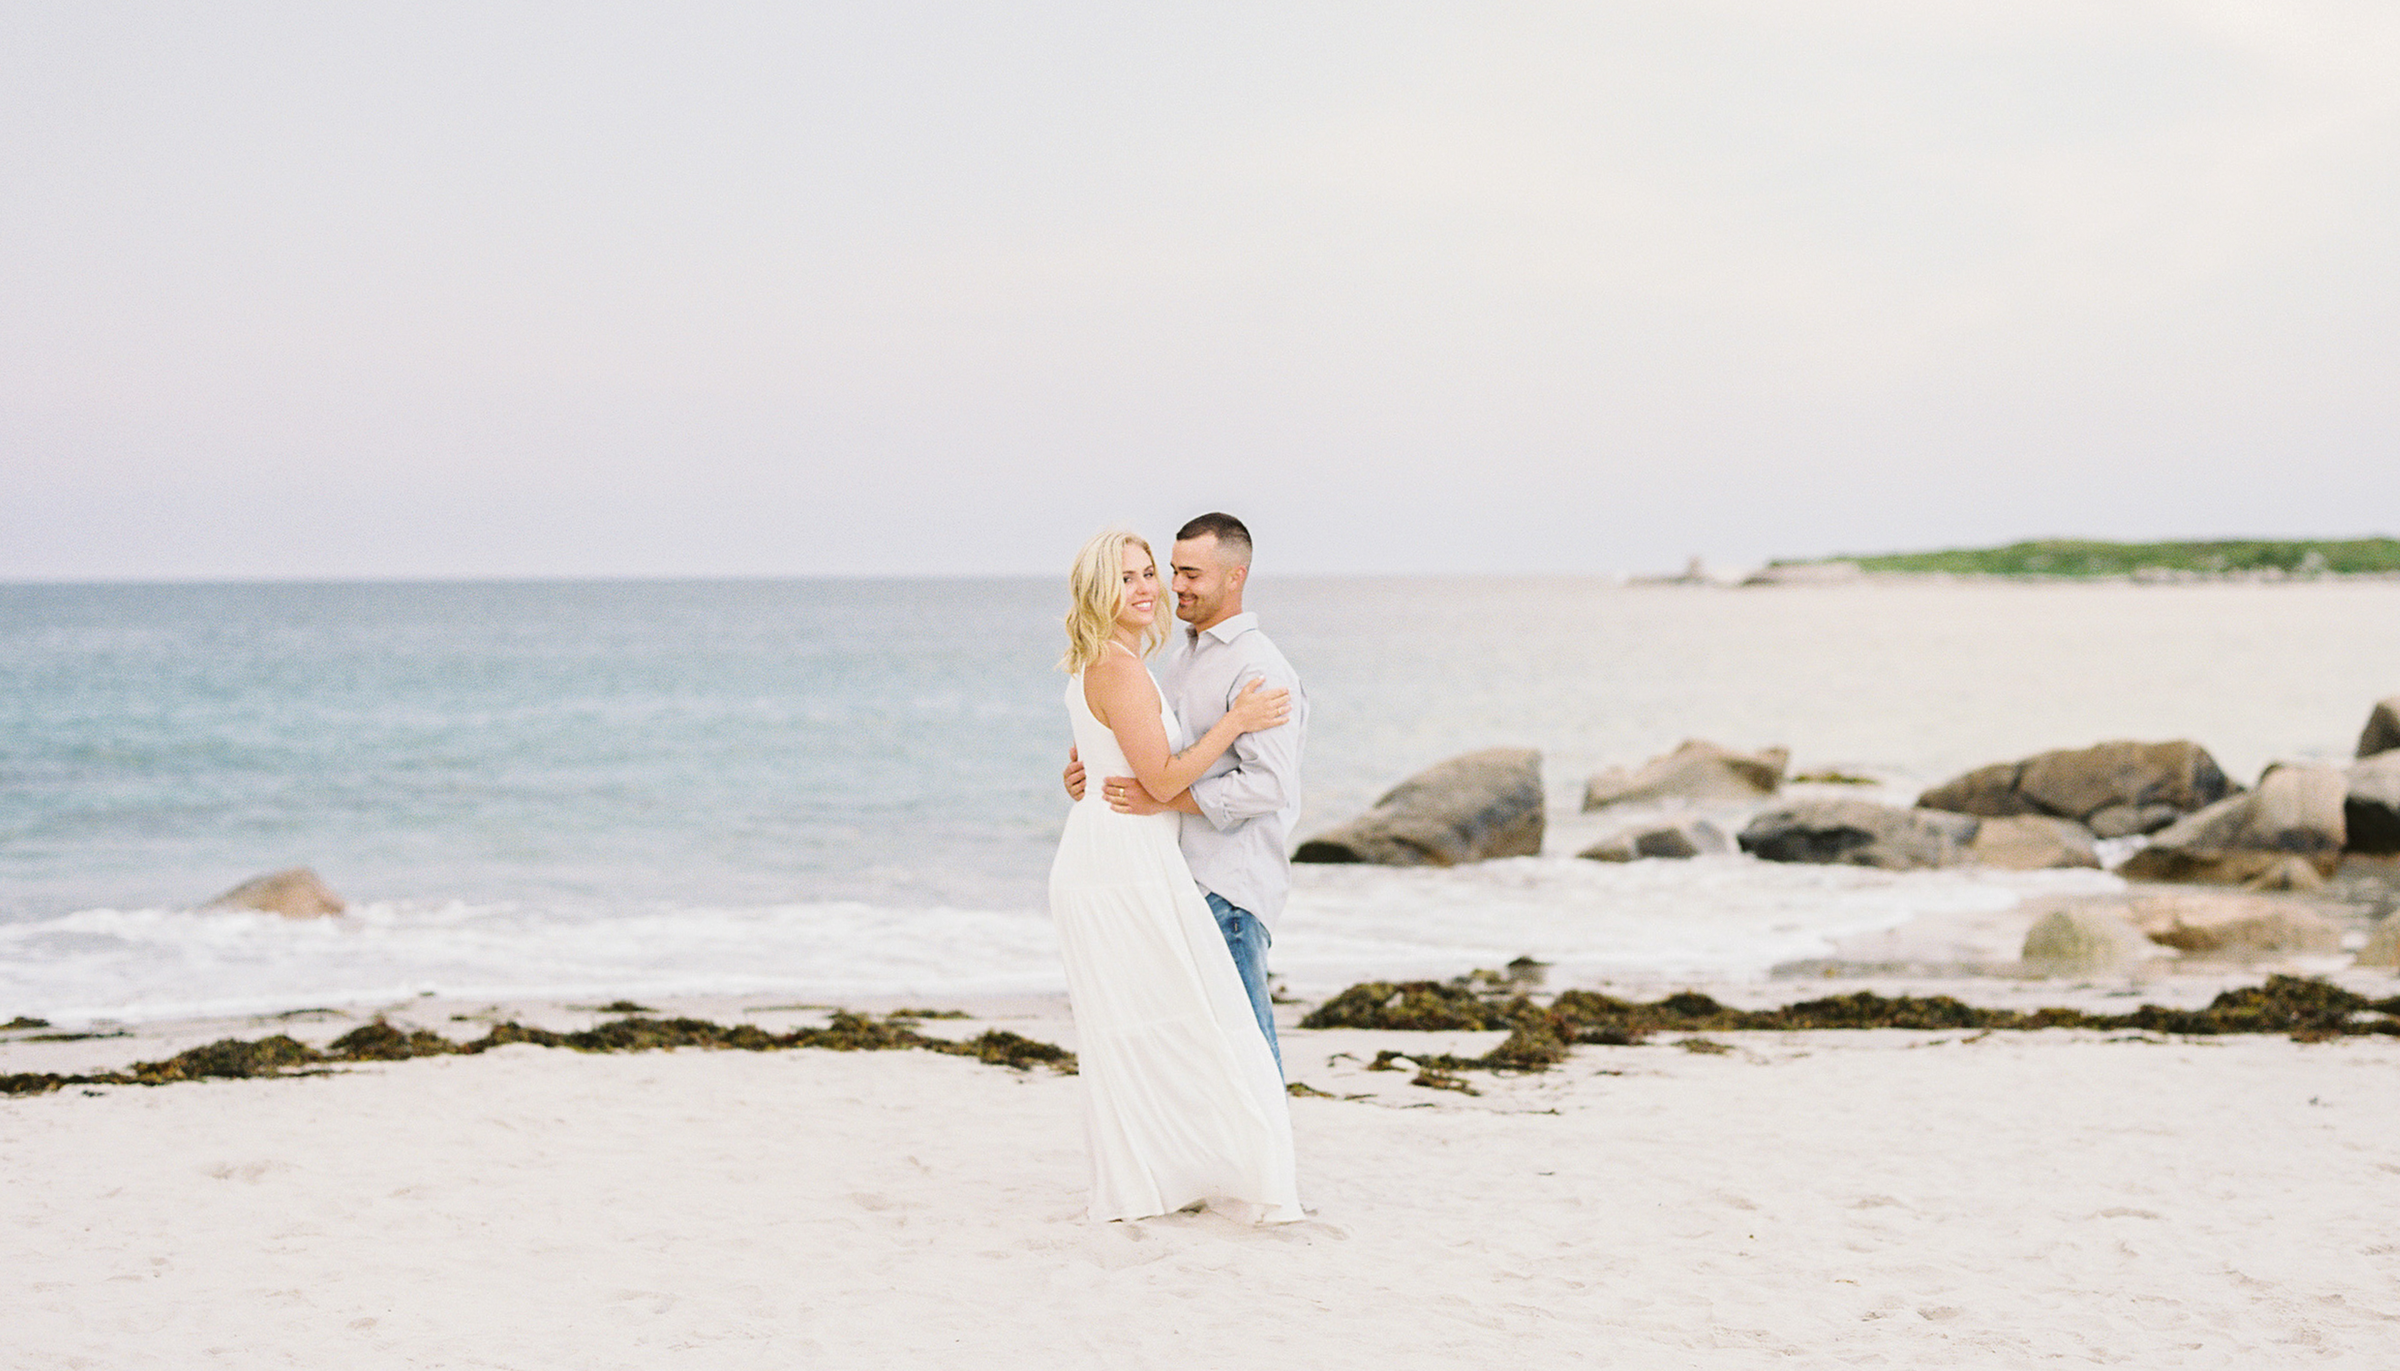 Jacqueline Anne, Halifax Wedding Photographer captured couple on beach in Crystal Crescent